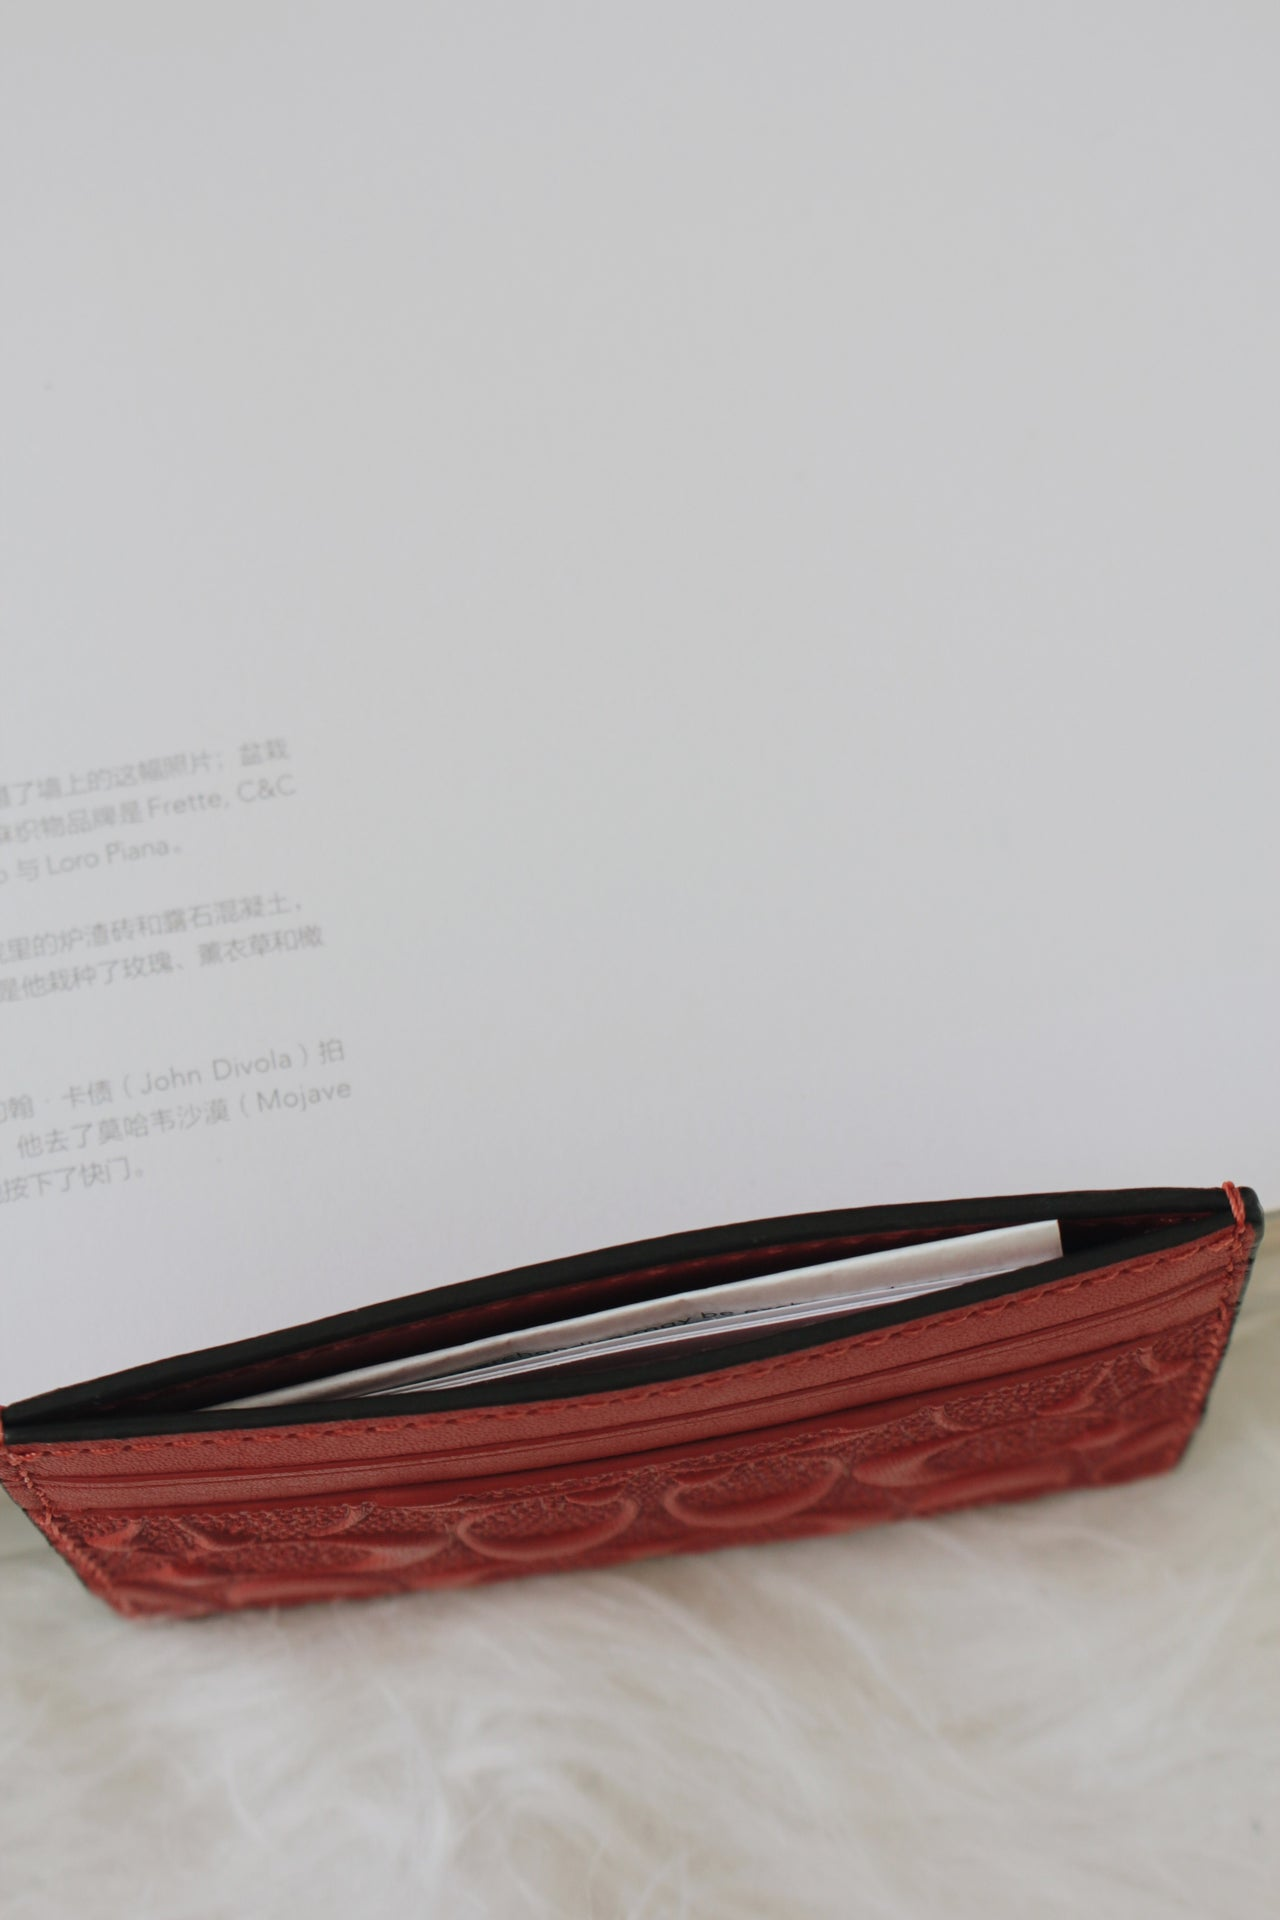 Coach NWT Flat Credit Card Case Leather - LovelyMadness Clothing Online Fashion Malaysia